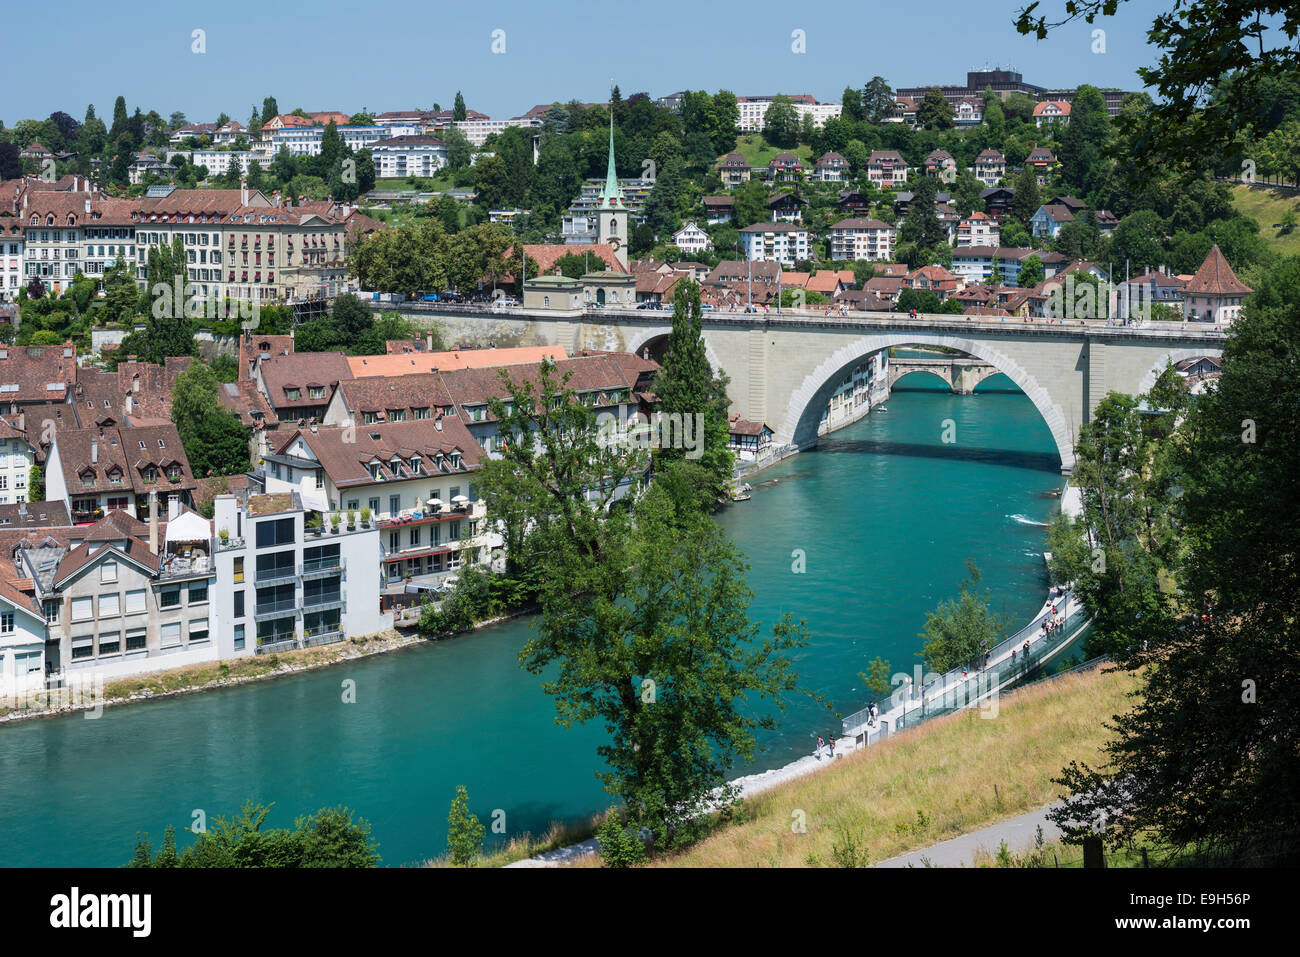 View of the historic centre with the Aar River or Aare River with the Nydegg Bridge, Bern, Canton of Bern, Switzerland - Stock Image